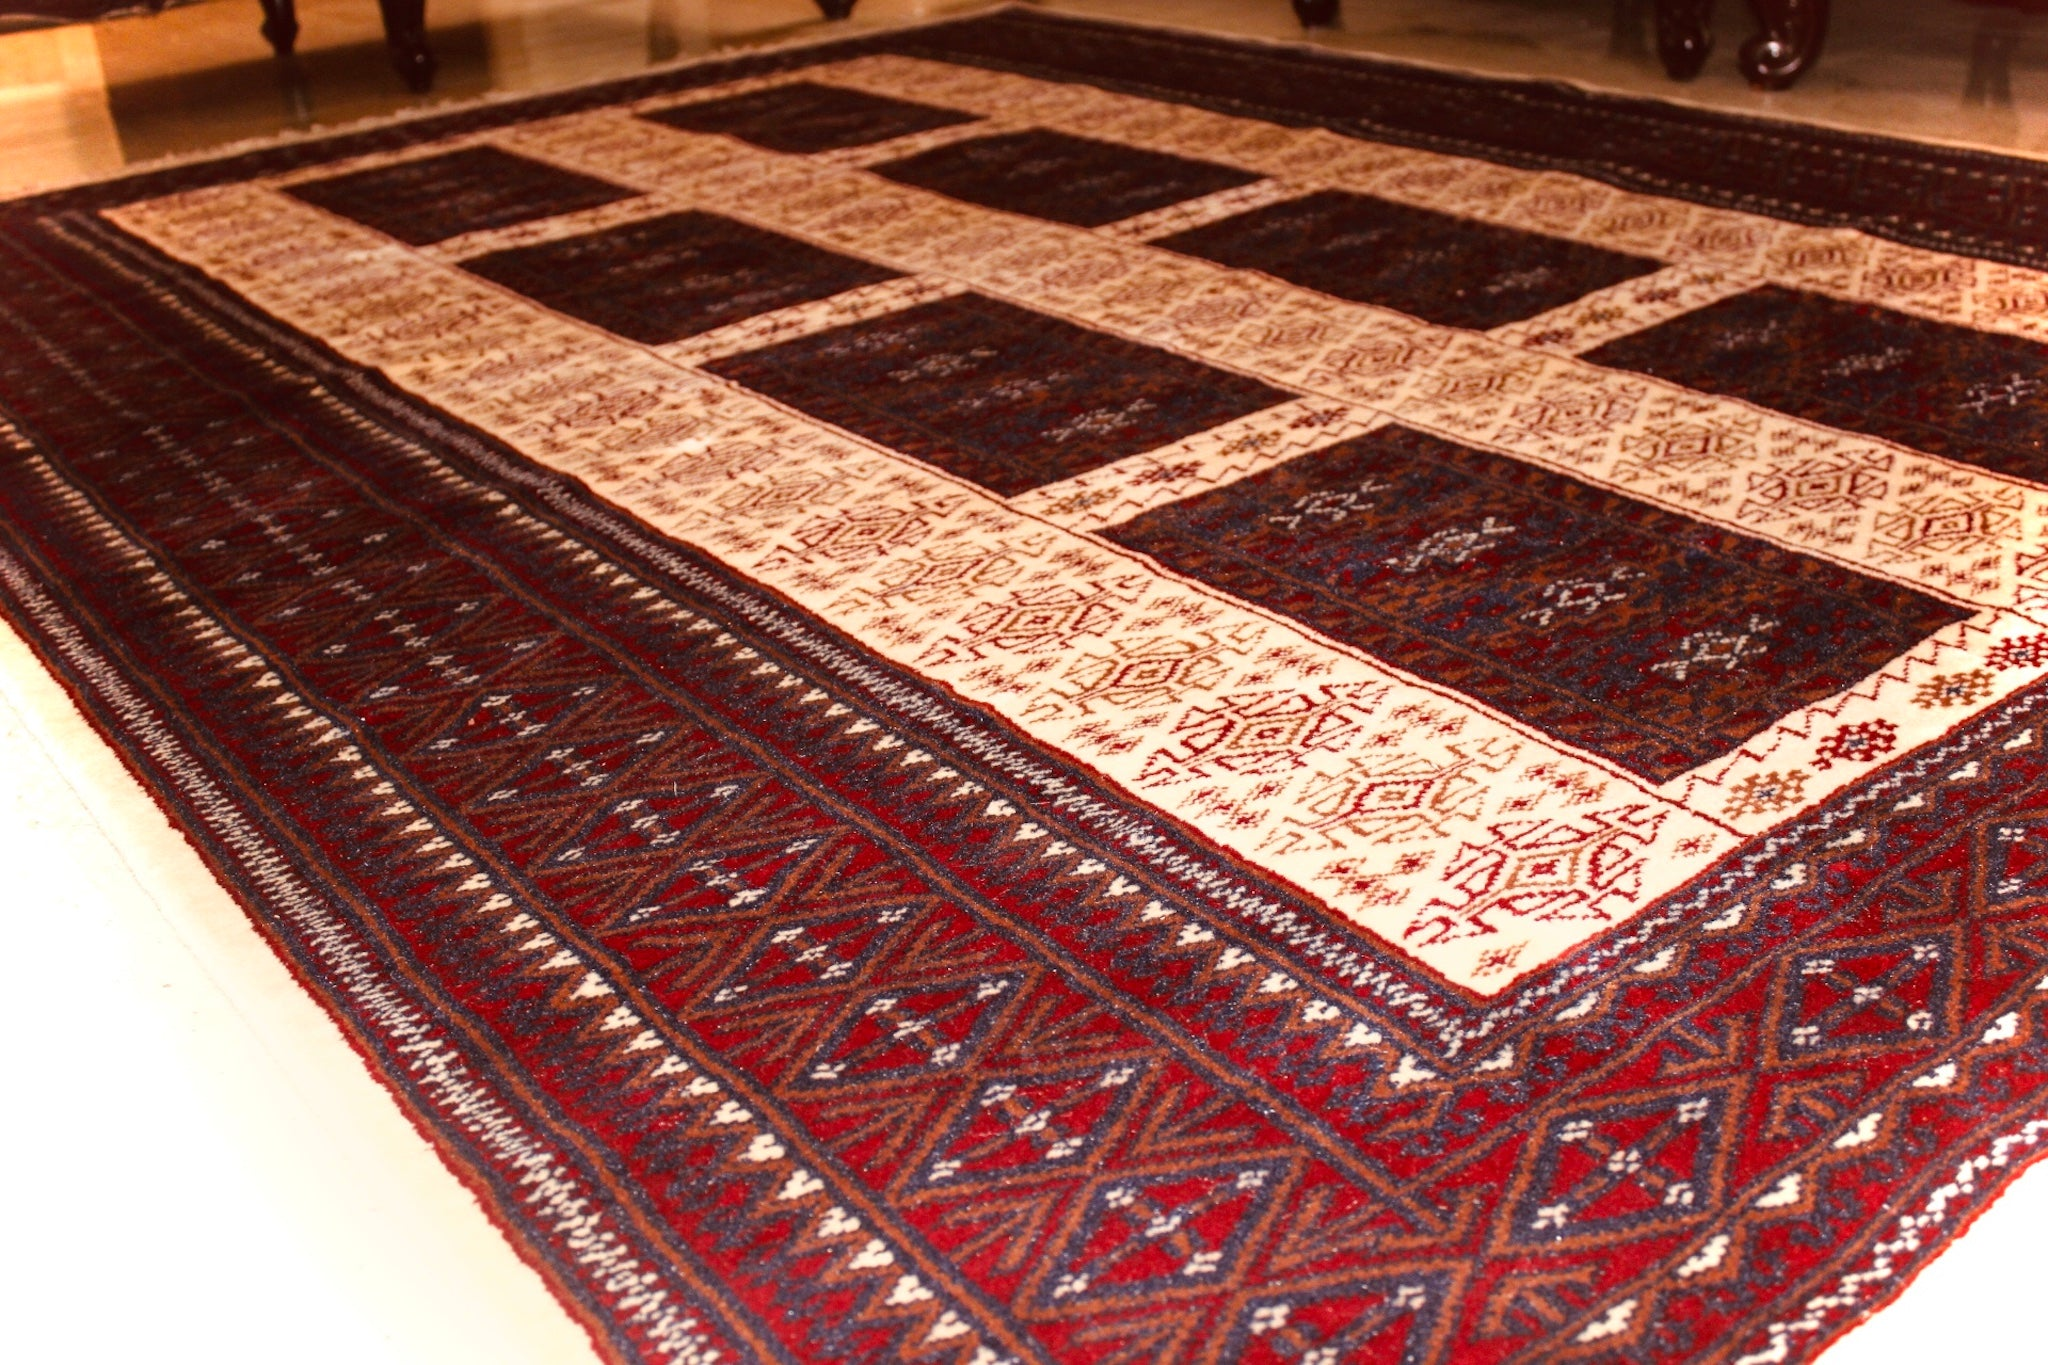 A 5 feet by 7 feet indian wool rug, the colours used are deep red, rust, blue and white.